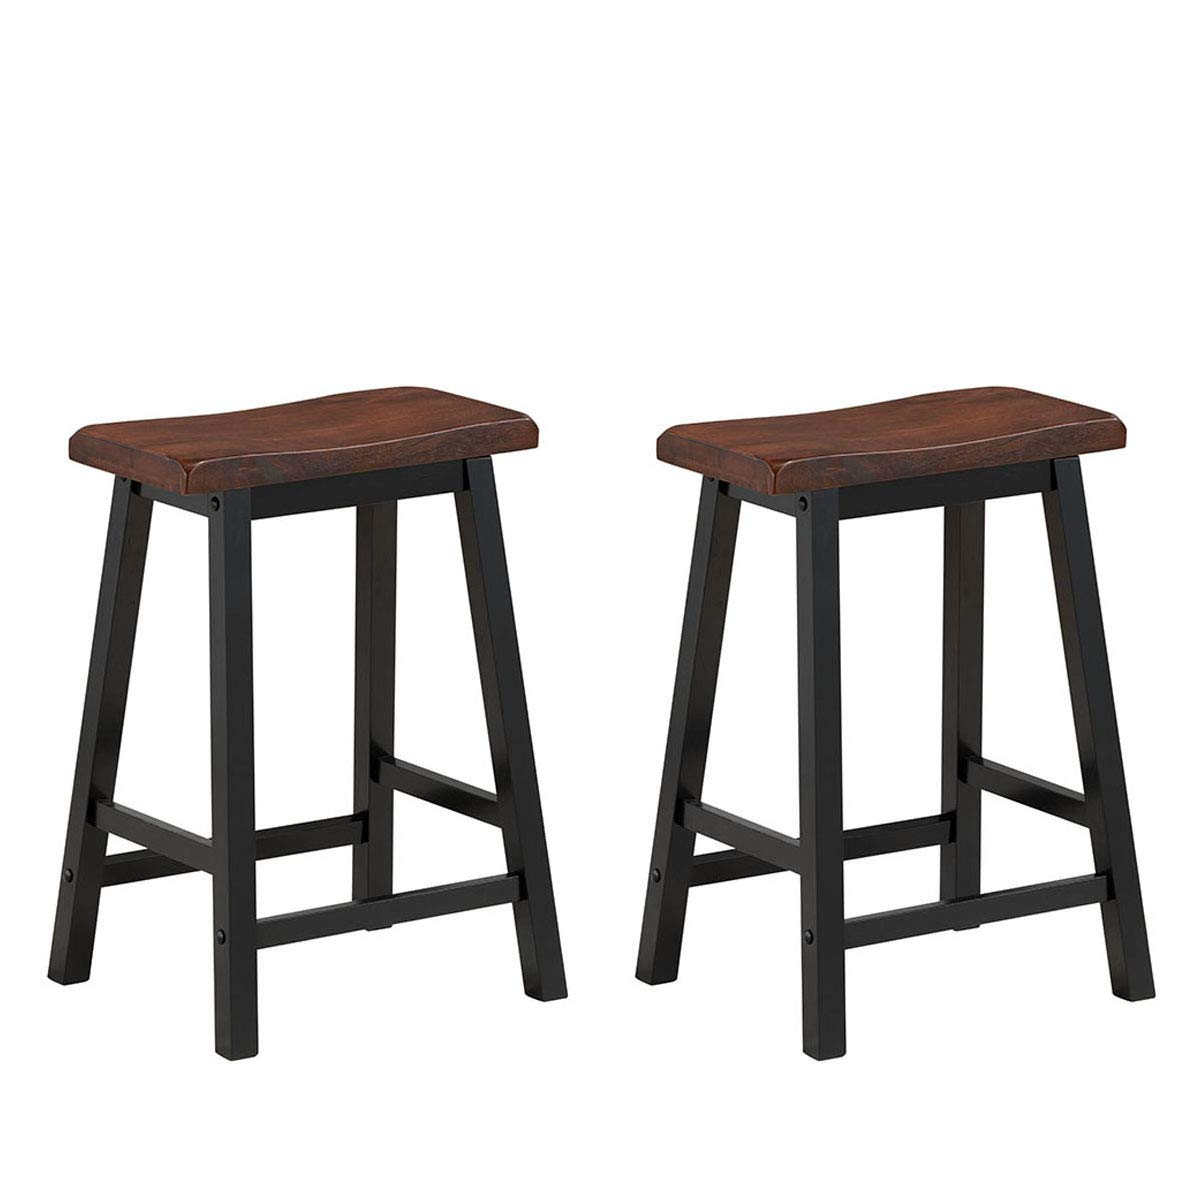 3ee03d66ca3b Amazon.com - COSTWAY Saddle Seat Stools Set of 2 Wood Vintage Counter Height  Bistro Dining Kitchen Pub Side Chairs (24